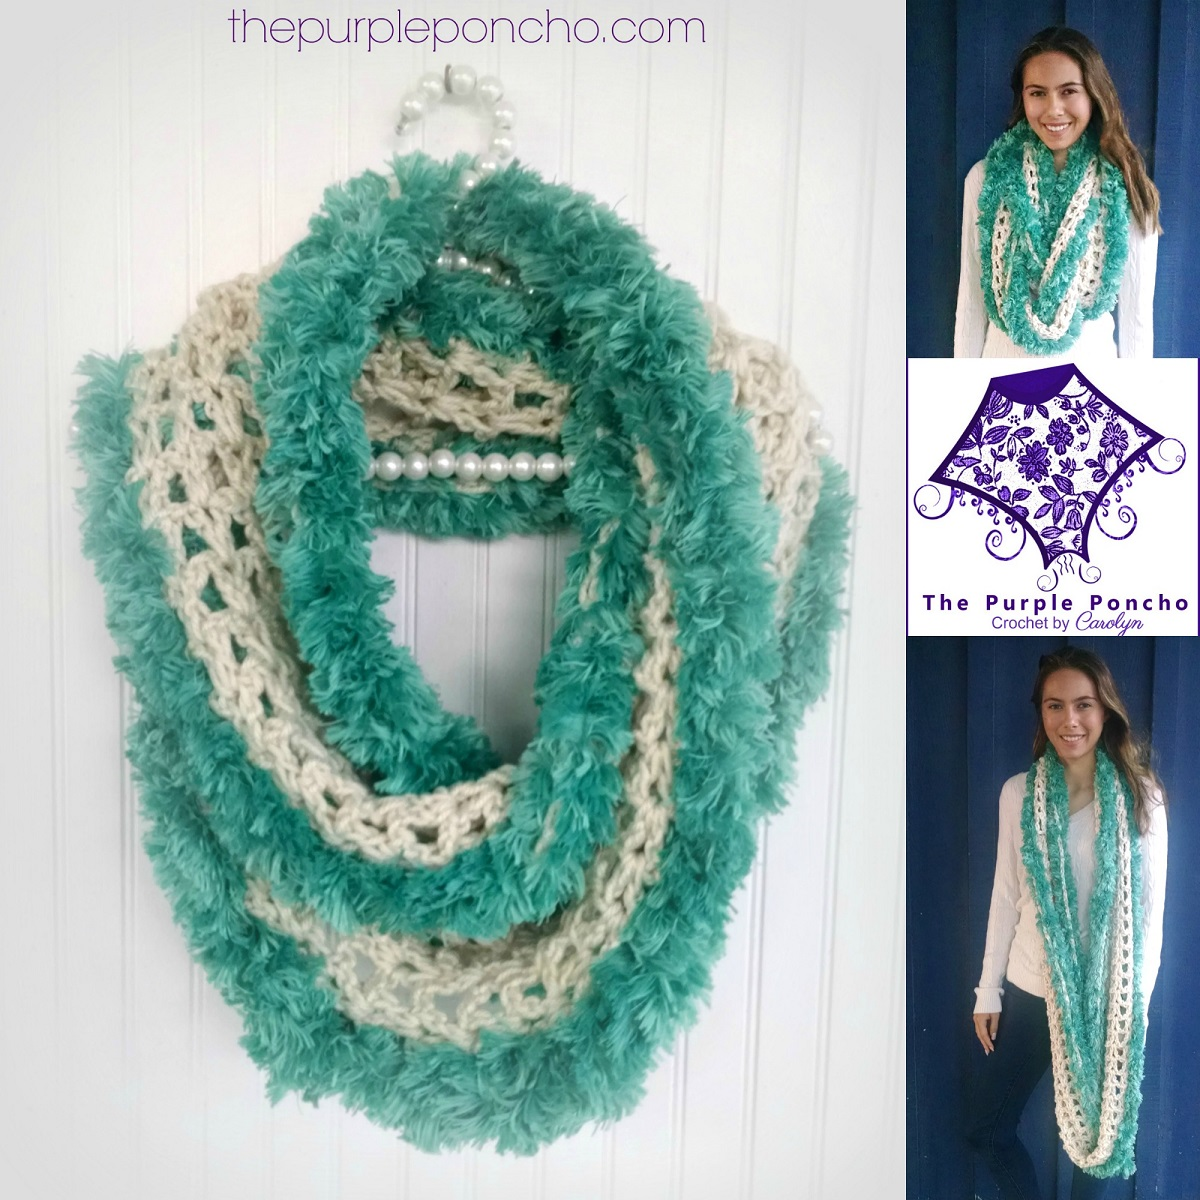 seamist-infinity-scarf-crochet-pattern-by-the-purple-poncho